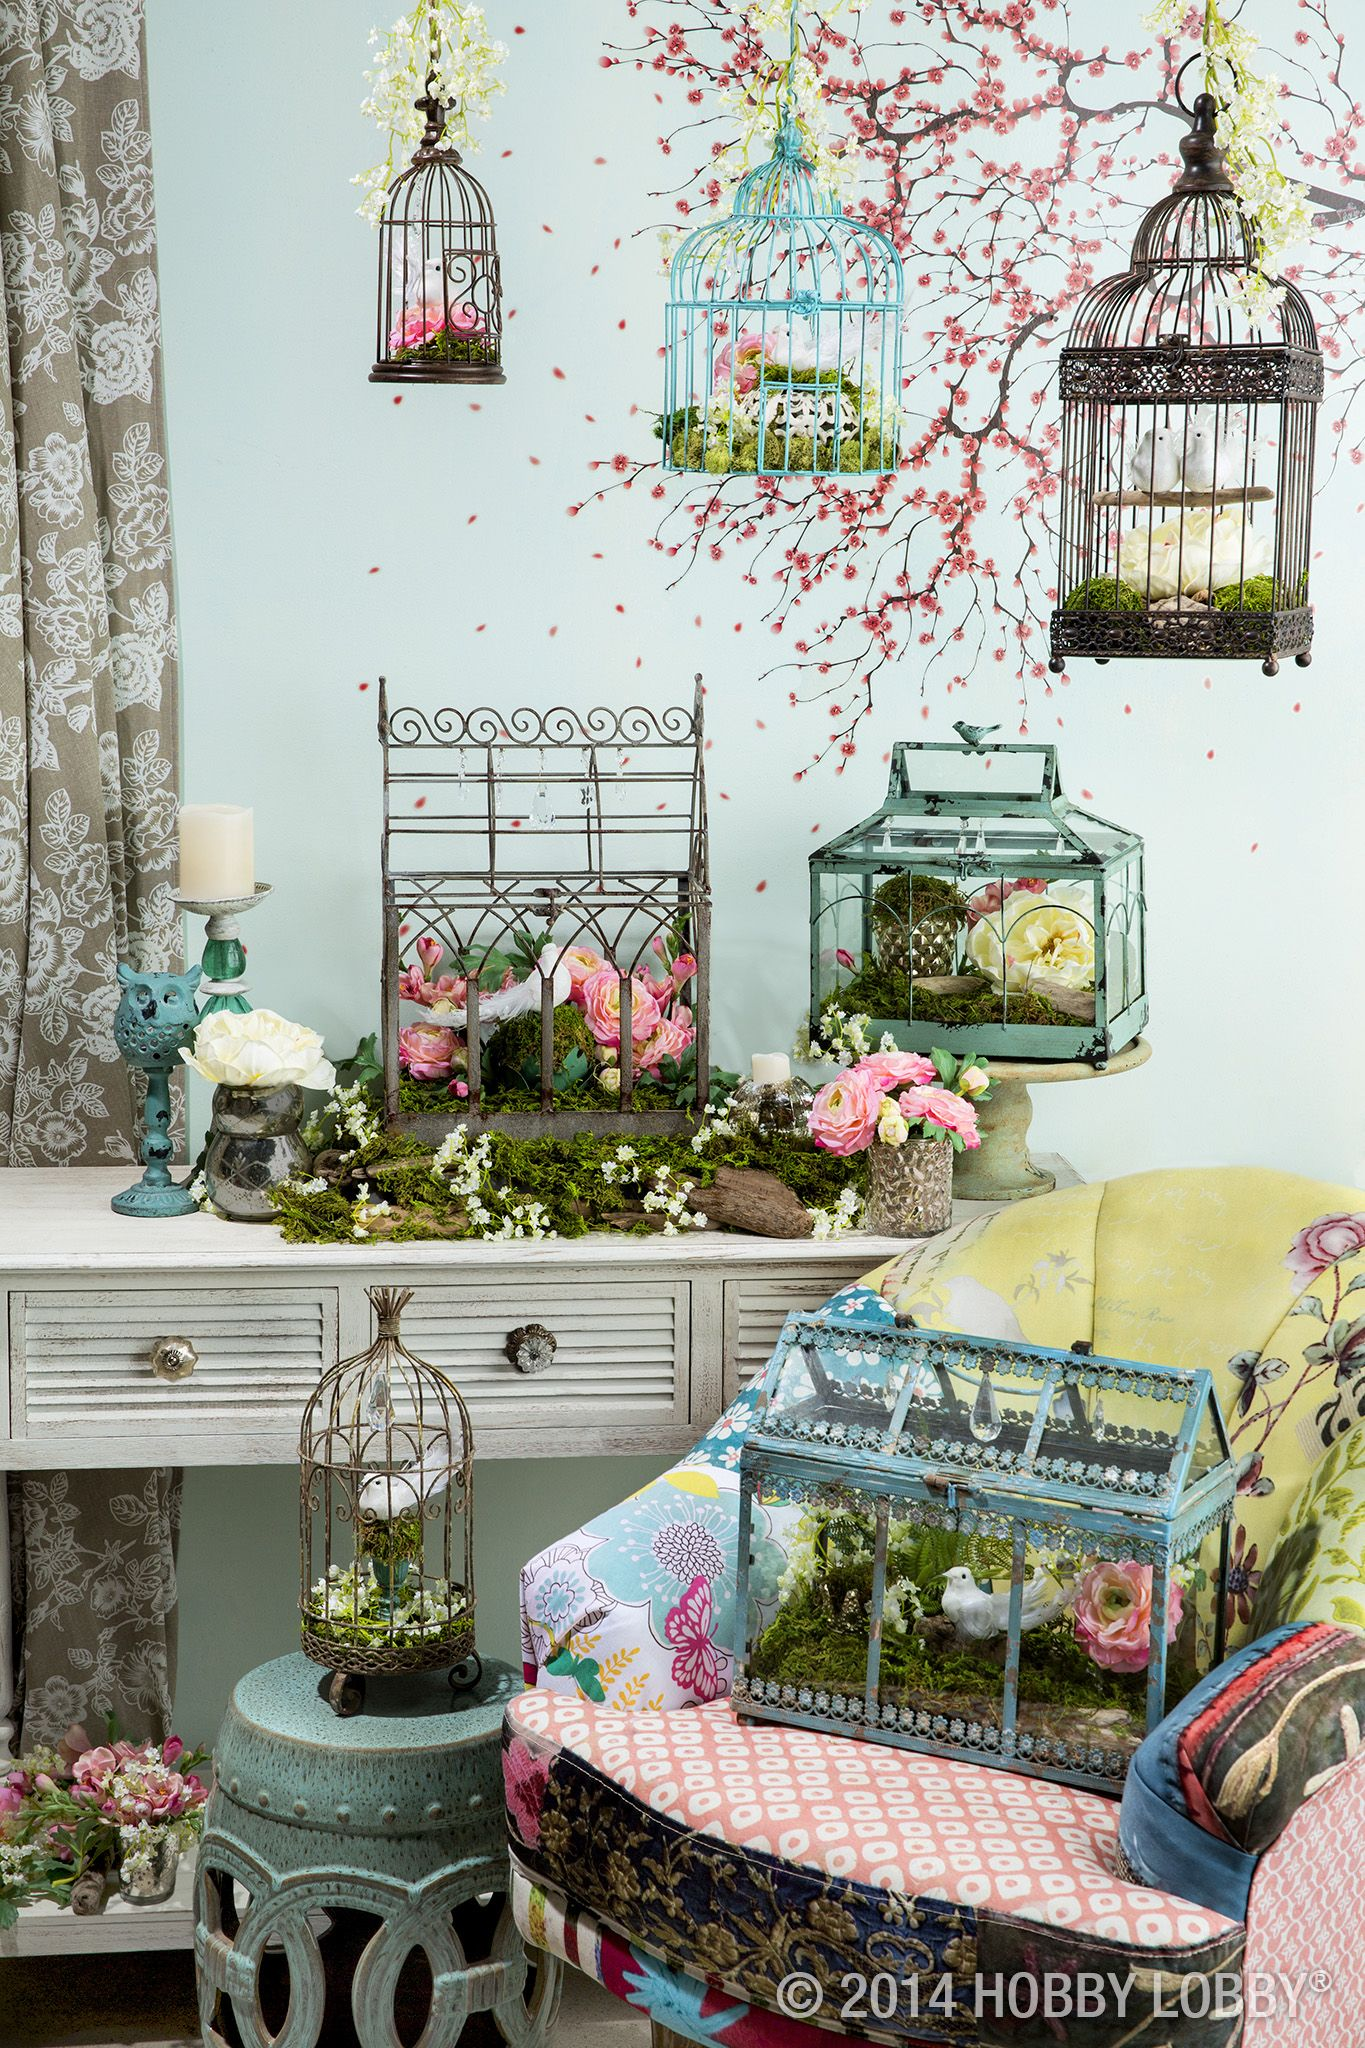 Hobby lobby garden decor  Beautiful birdcages and terrariums bring the magic of spring into